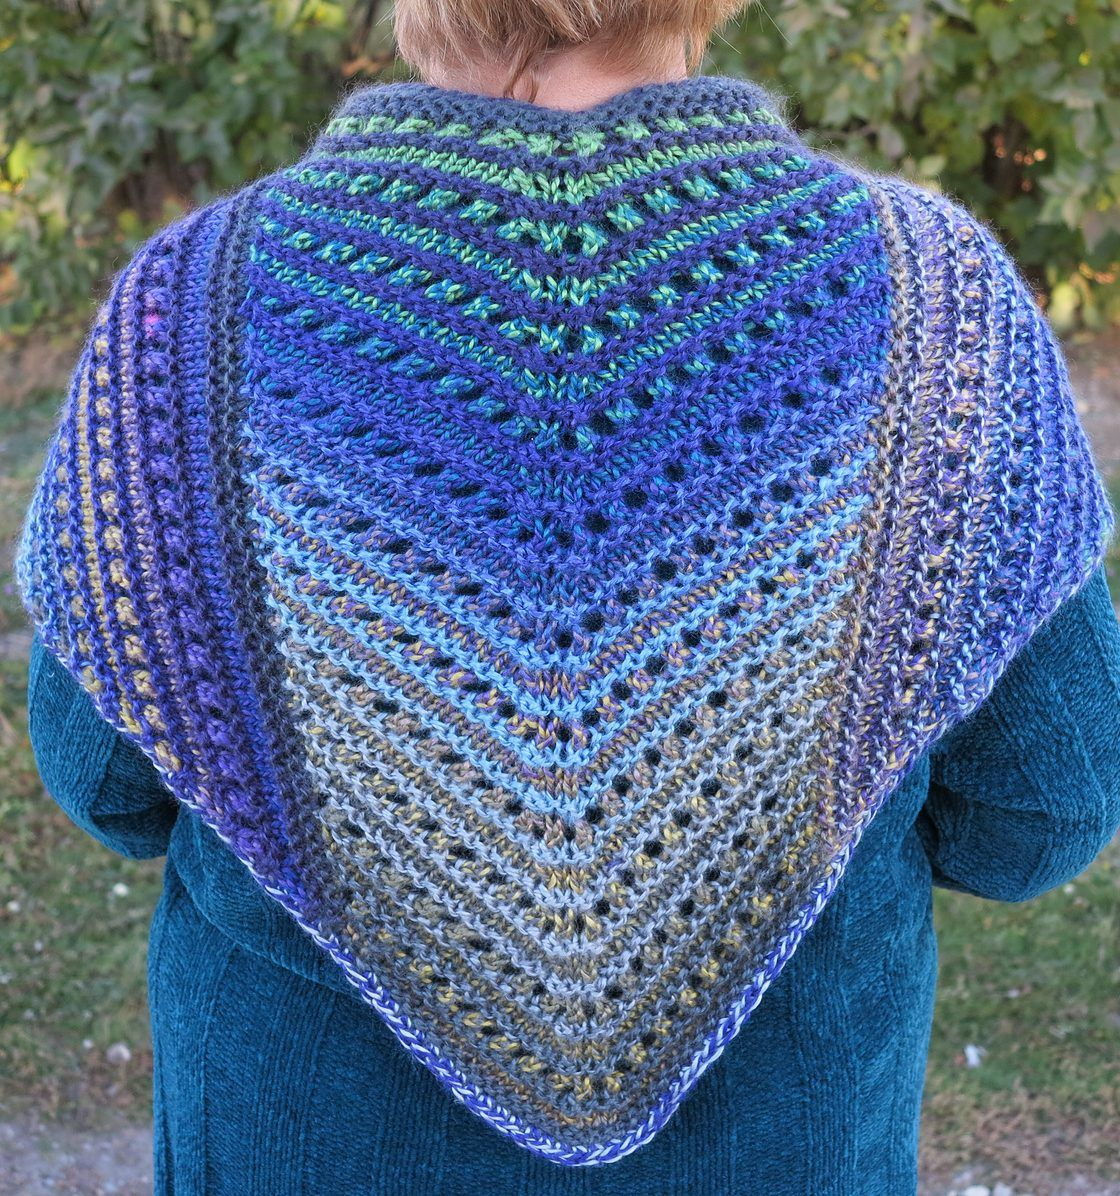 Free Knitting Pattern for Simple Lace Shawl | druty | Pinterest ...